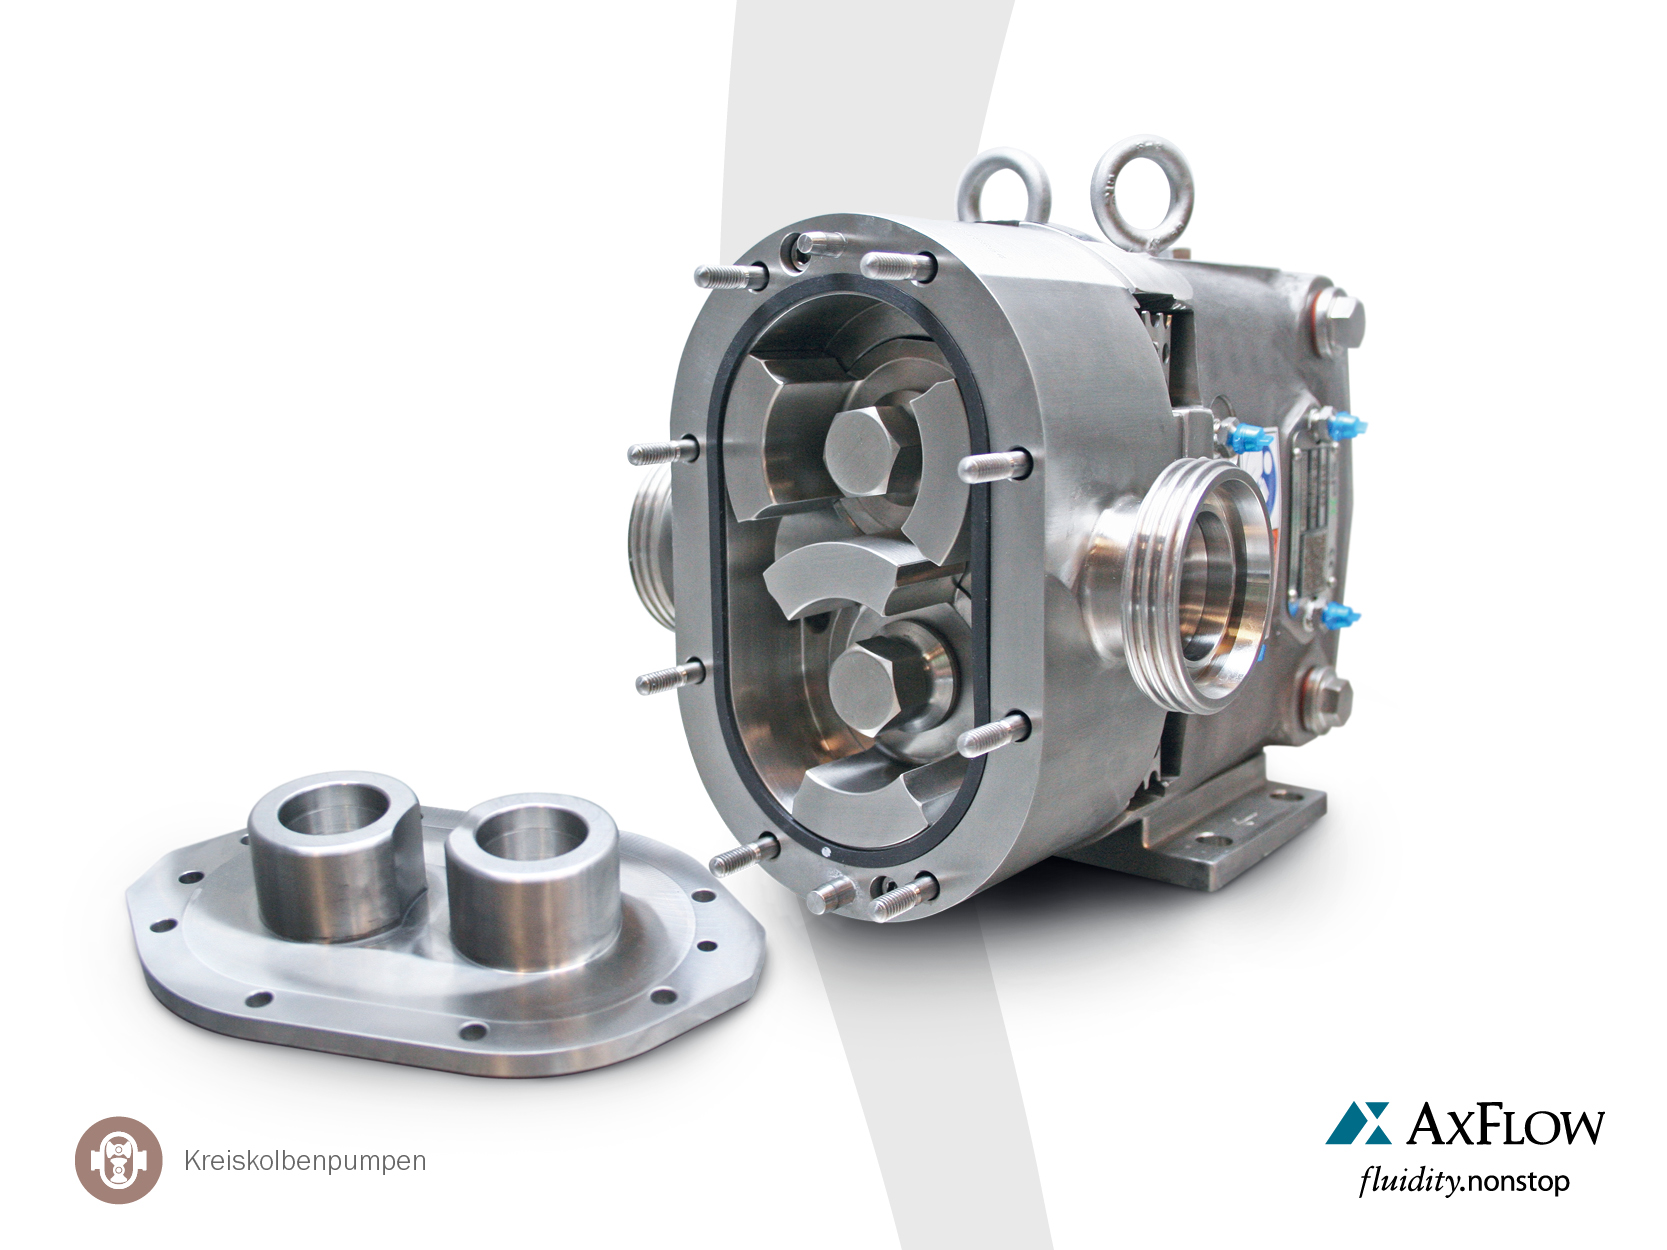 Product picture of Rotary piston pump